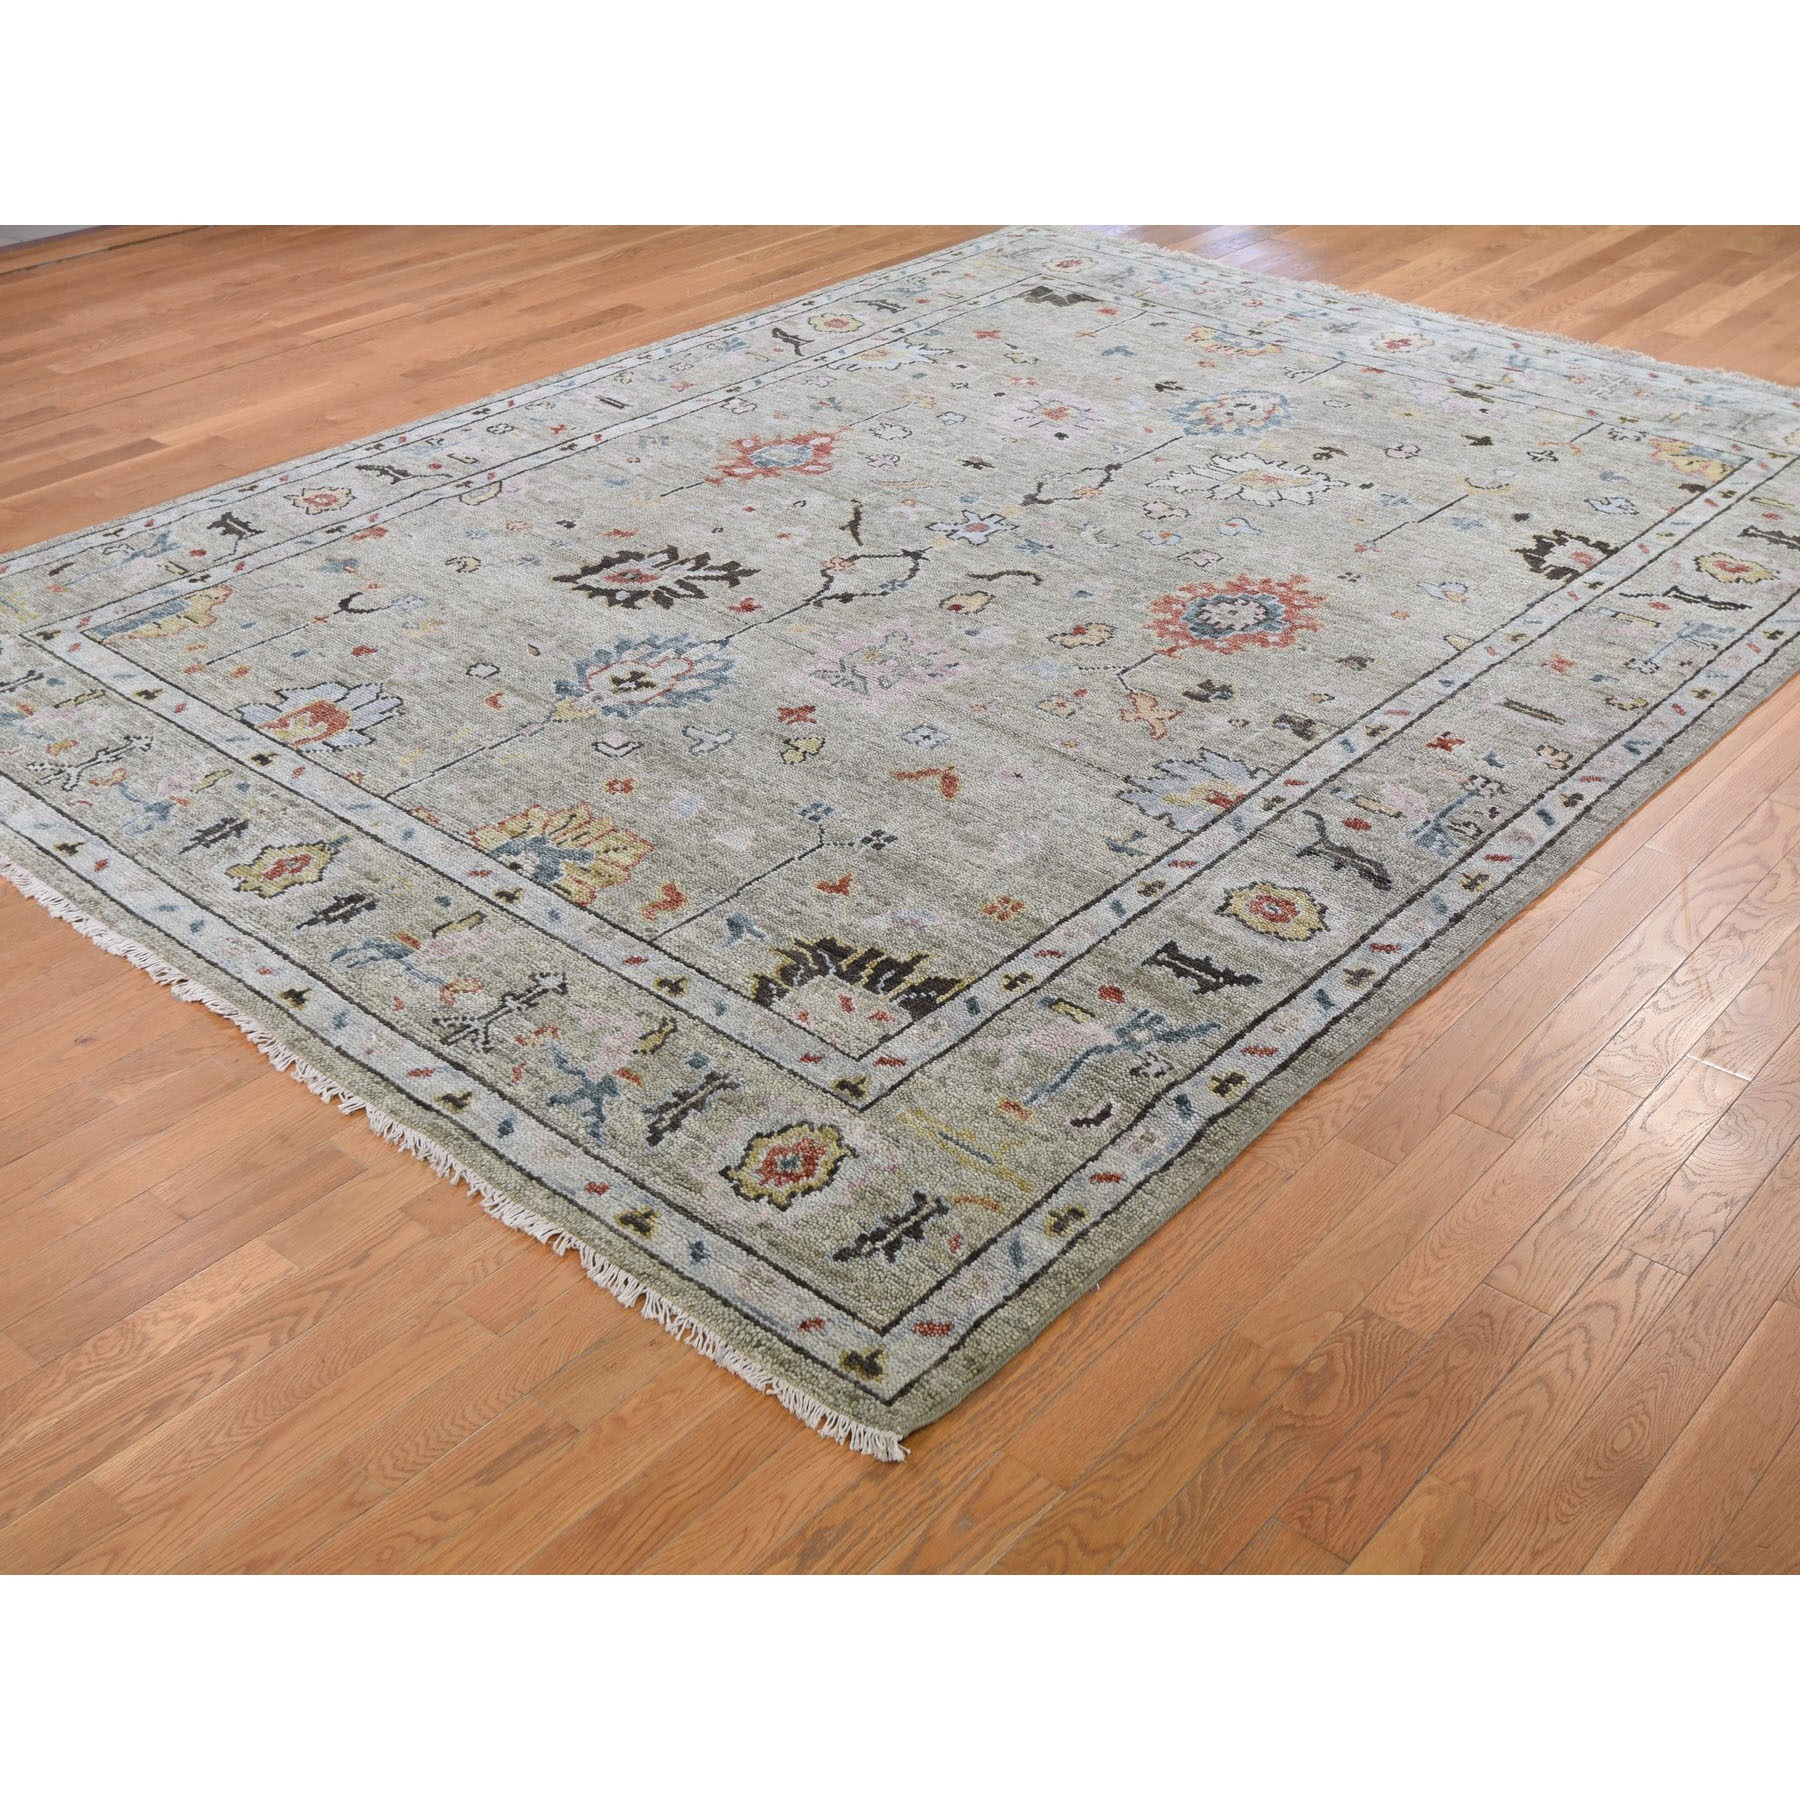 """9'x11'10""""  Gray Supple Collection Oushak Design Hand Knotted Oriental Rug"""